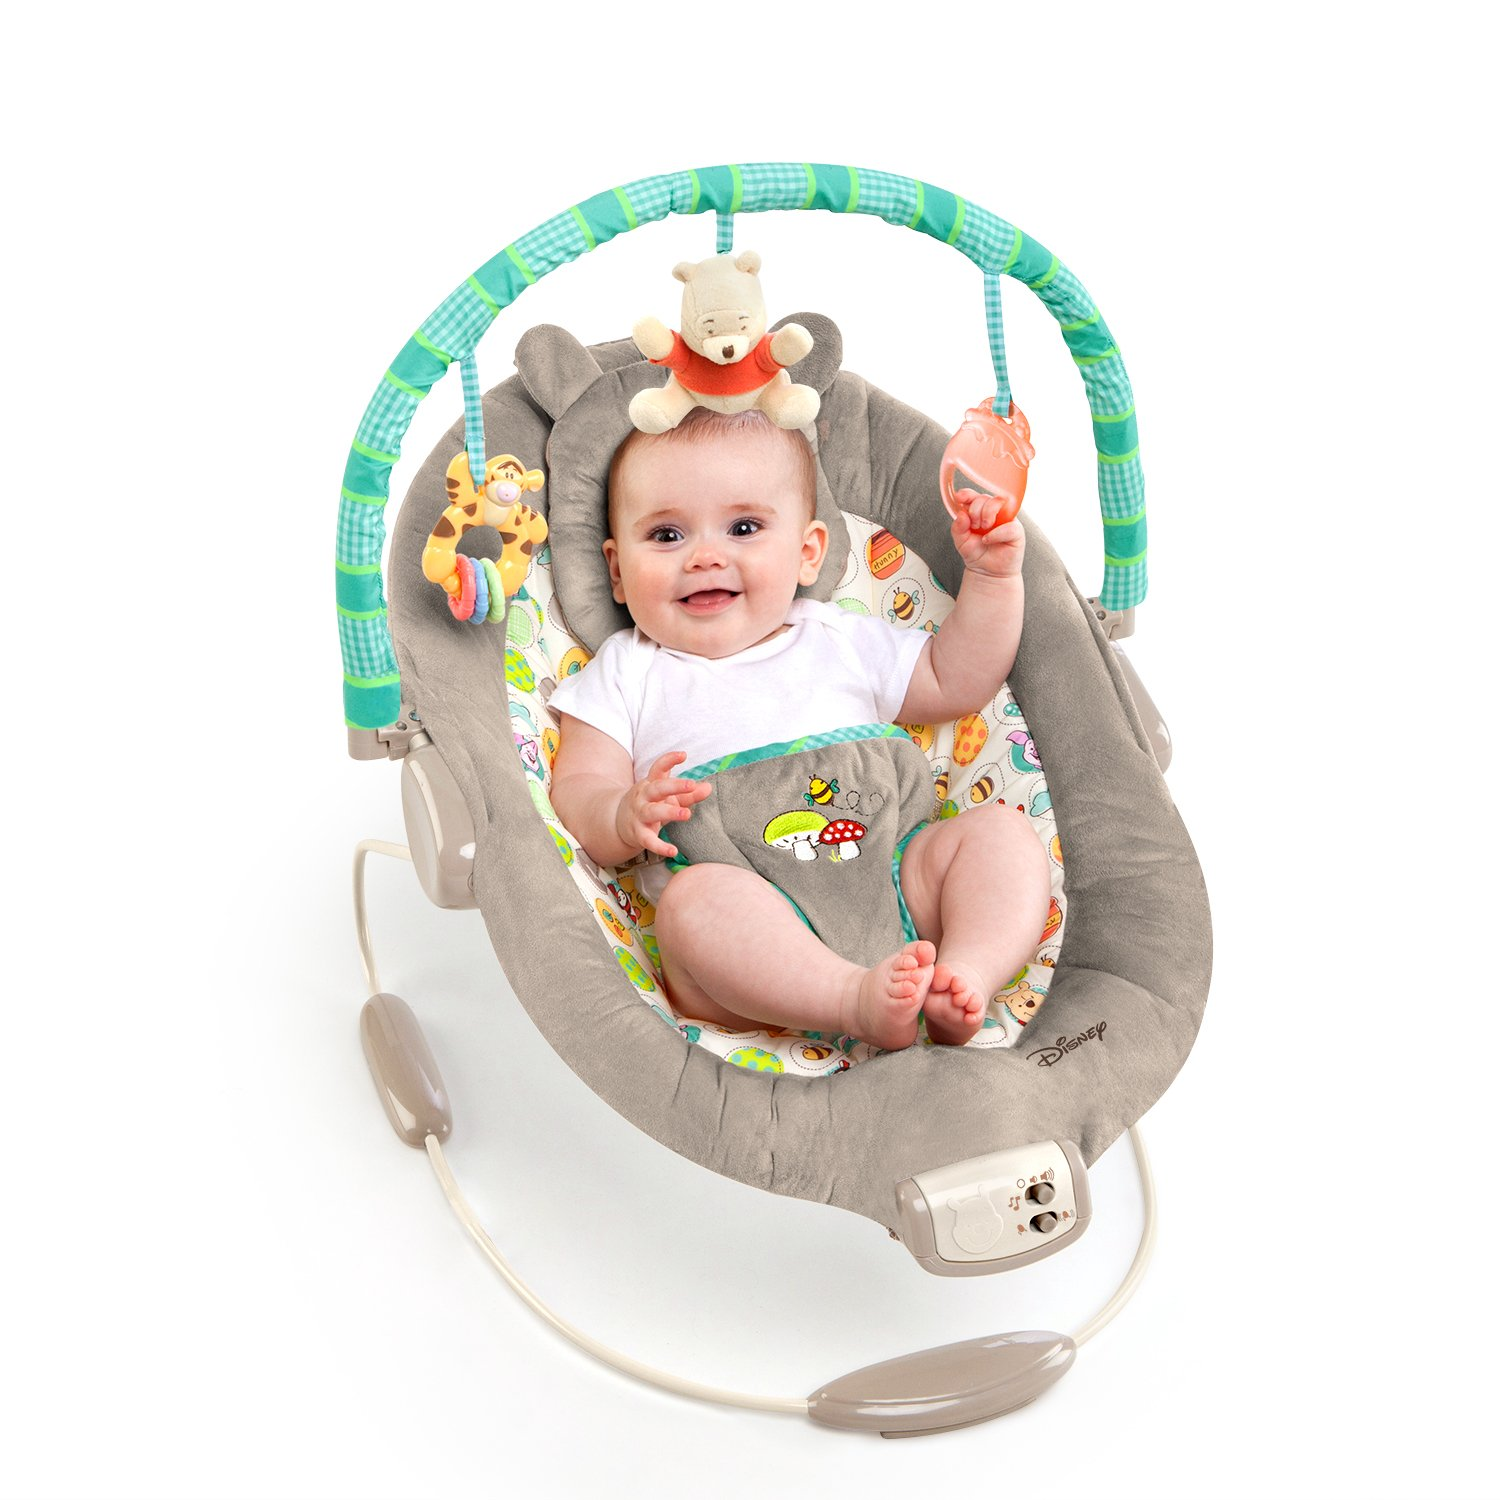 $39.99 (was $52.99) Disney Baby Winnie The Pooh Bouncer, Dots and Hunny Pots